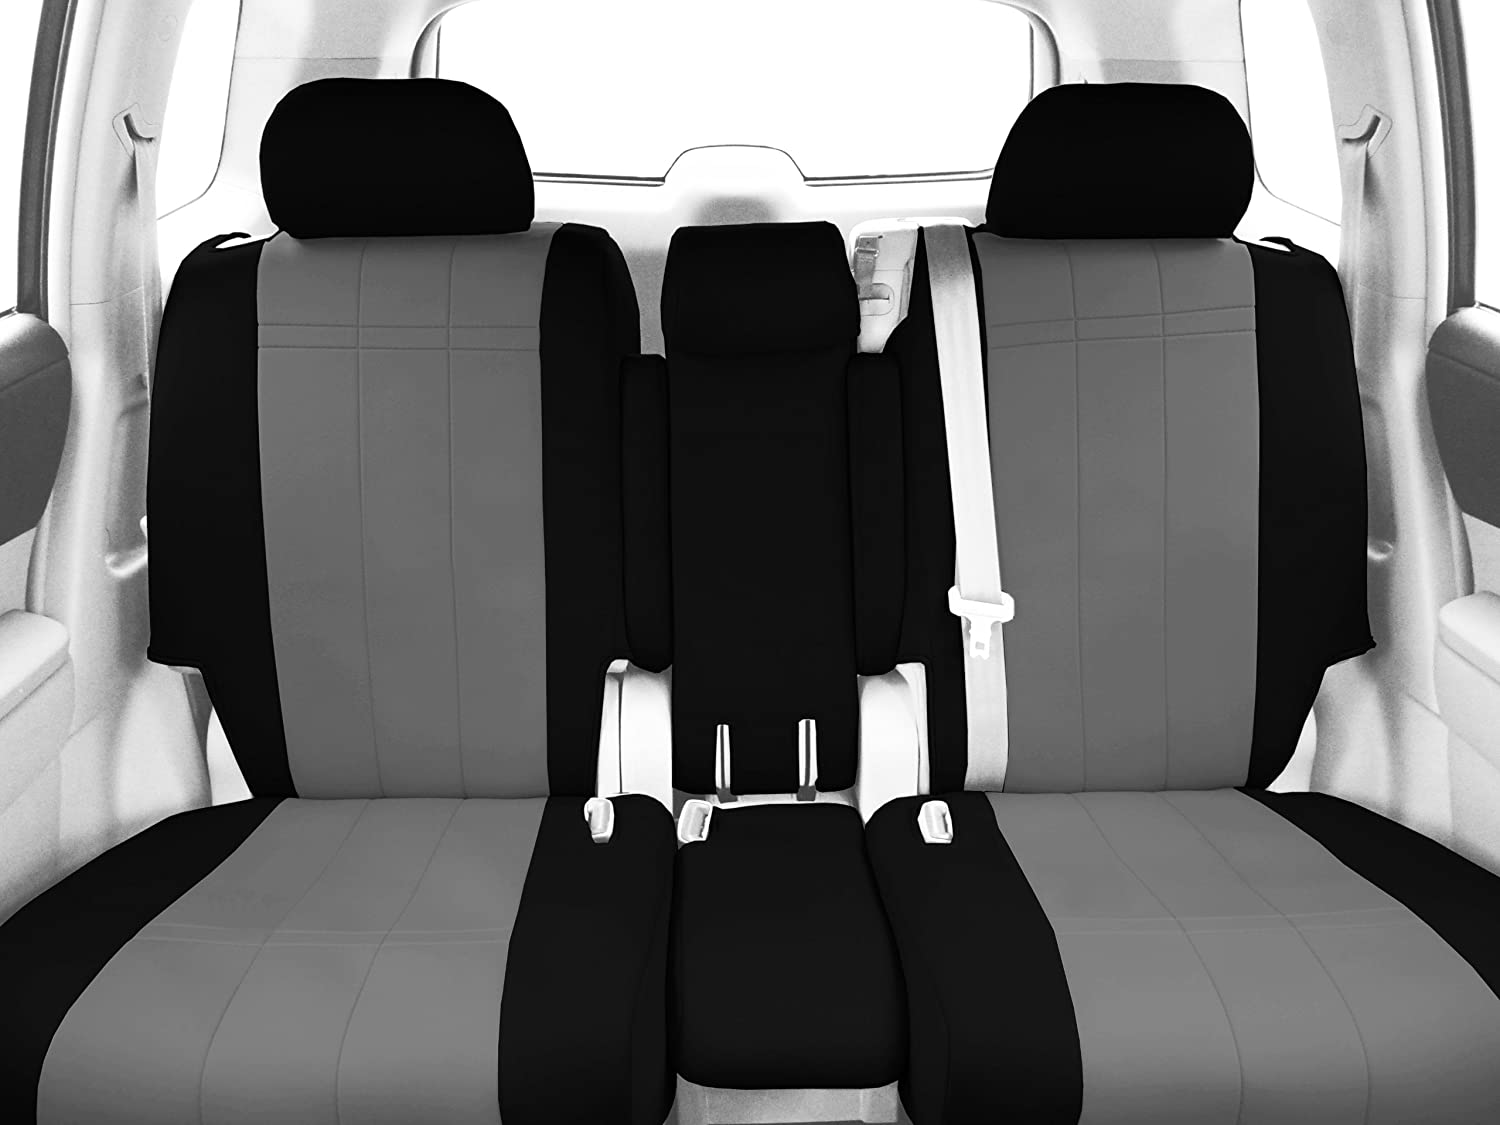 Astonishing Caltrend Front Row 40 20 40 Split Bench Custom Fit Seat Cover For Select Ford F 150 Models Neosupreme Light Grey Insert And Black Trim Ibusinesslaw Wood Chair Design Ideas Ibusinesslaworg